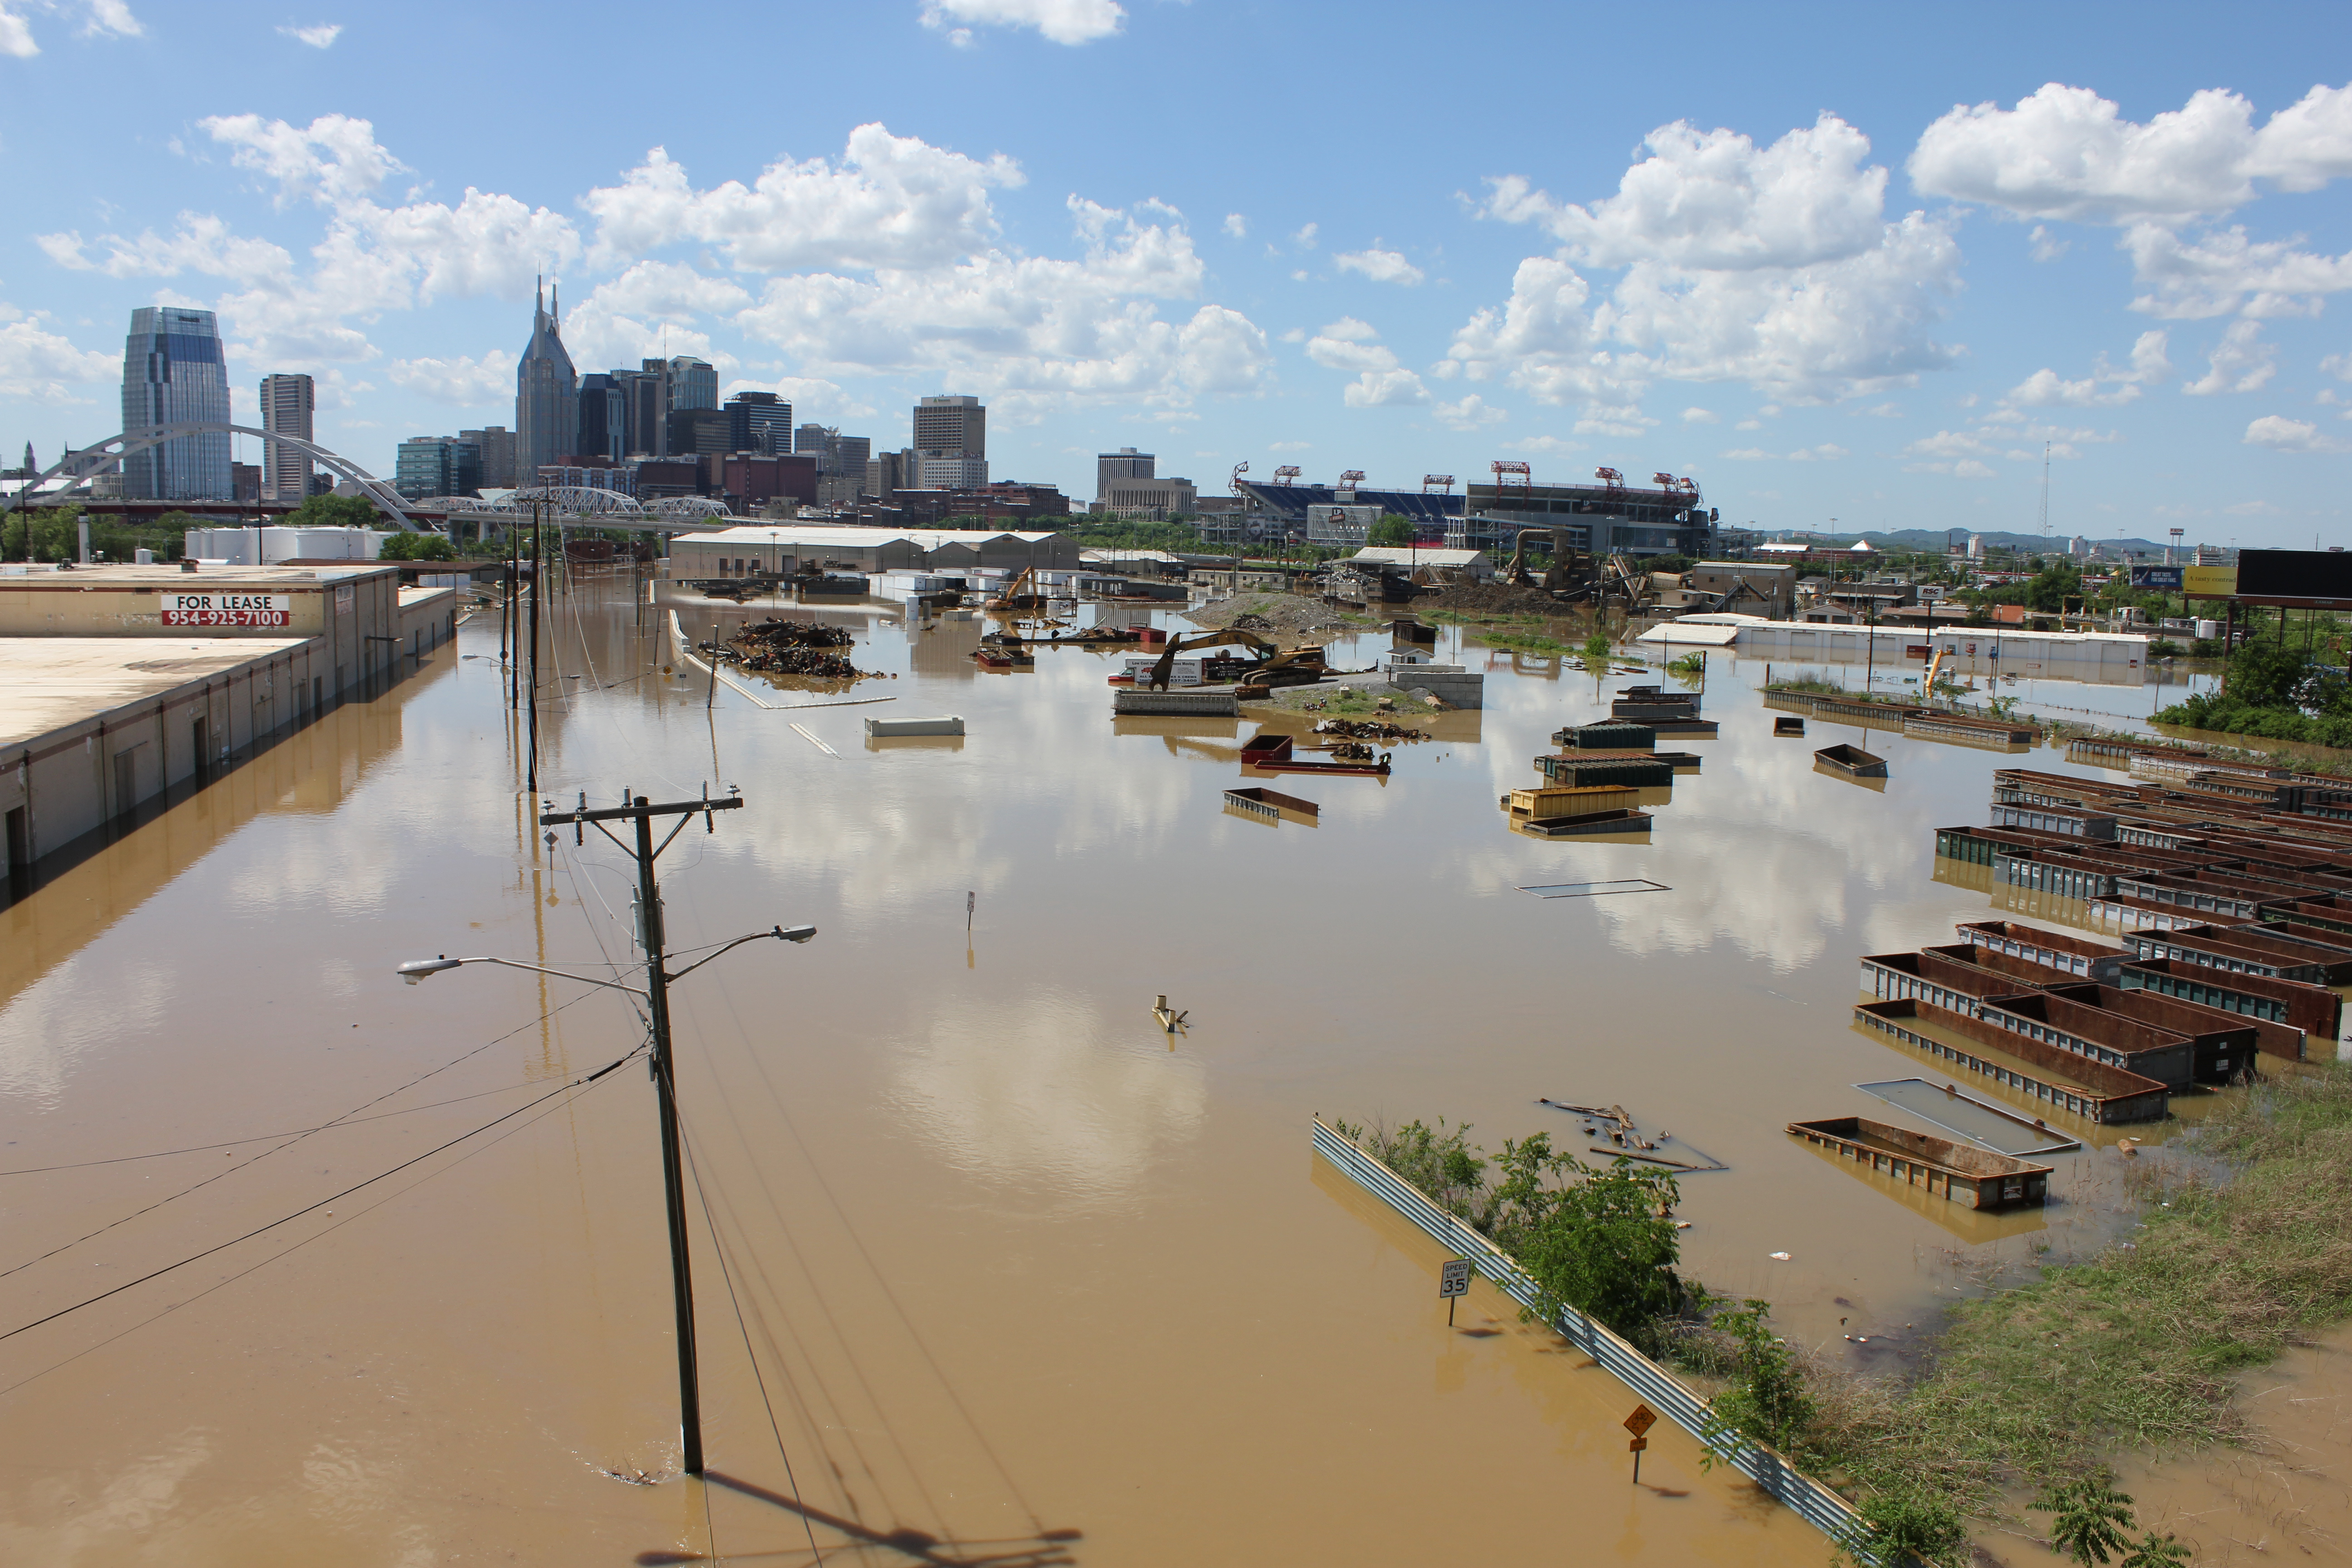 2010 Tennessee floods - Wikipedia